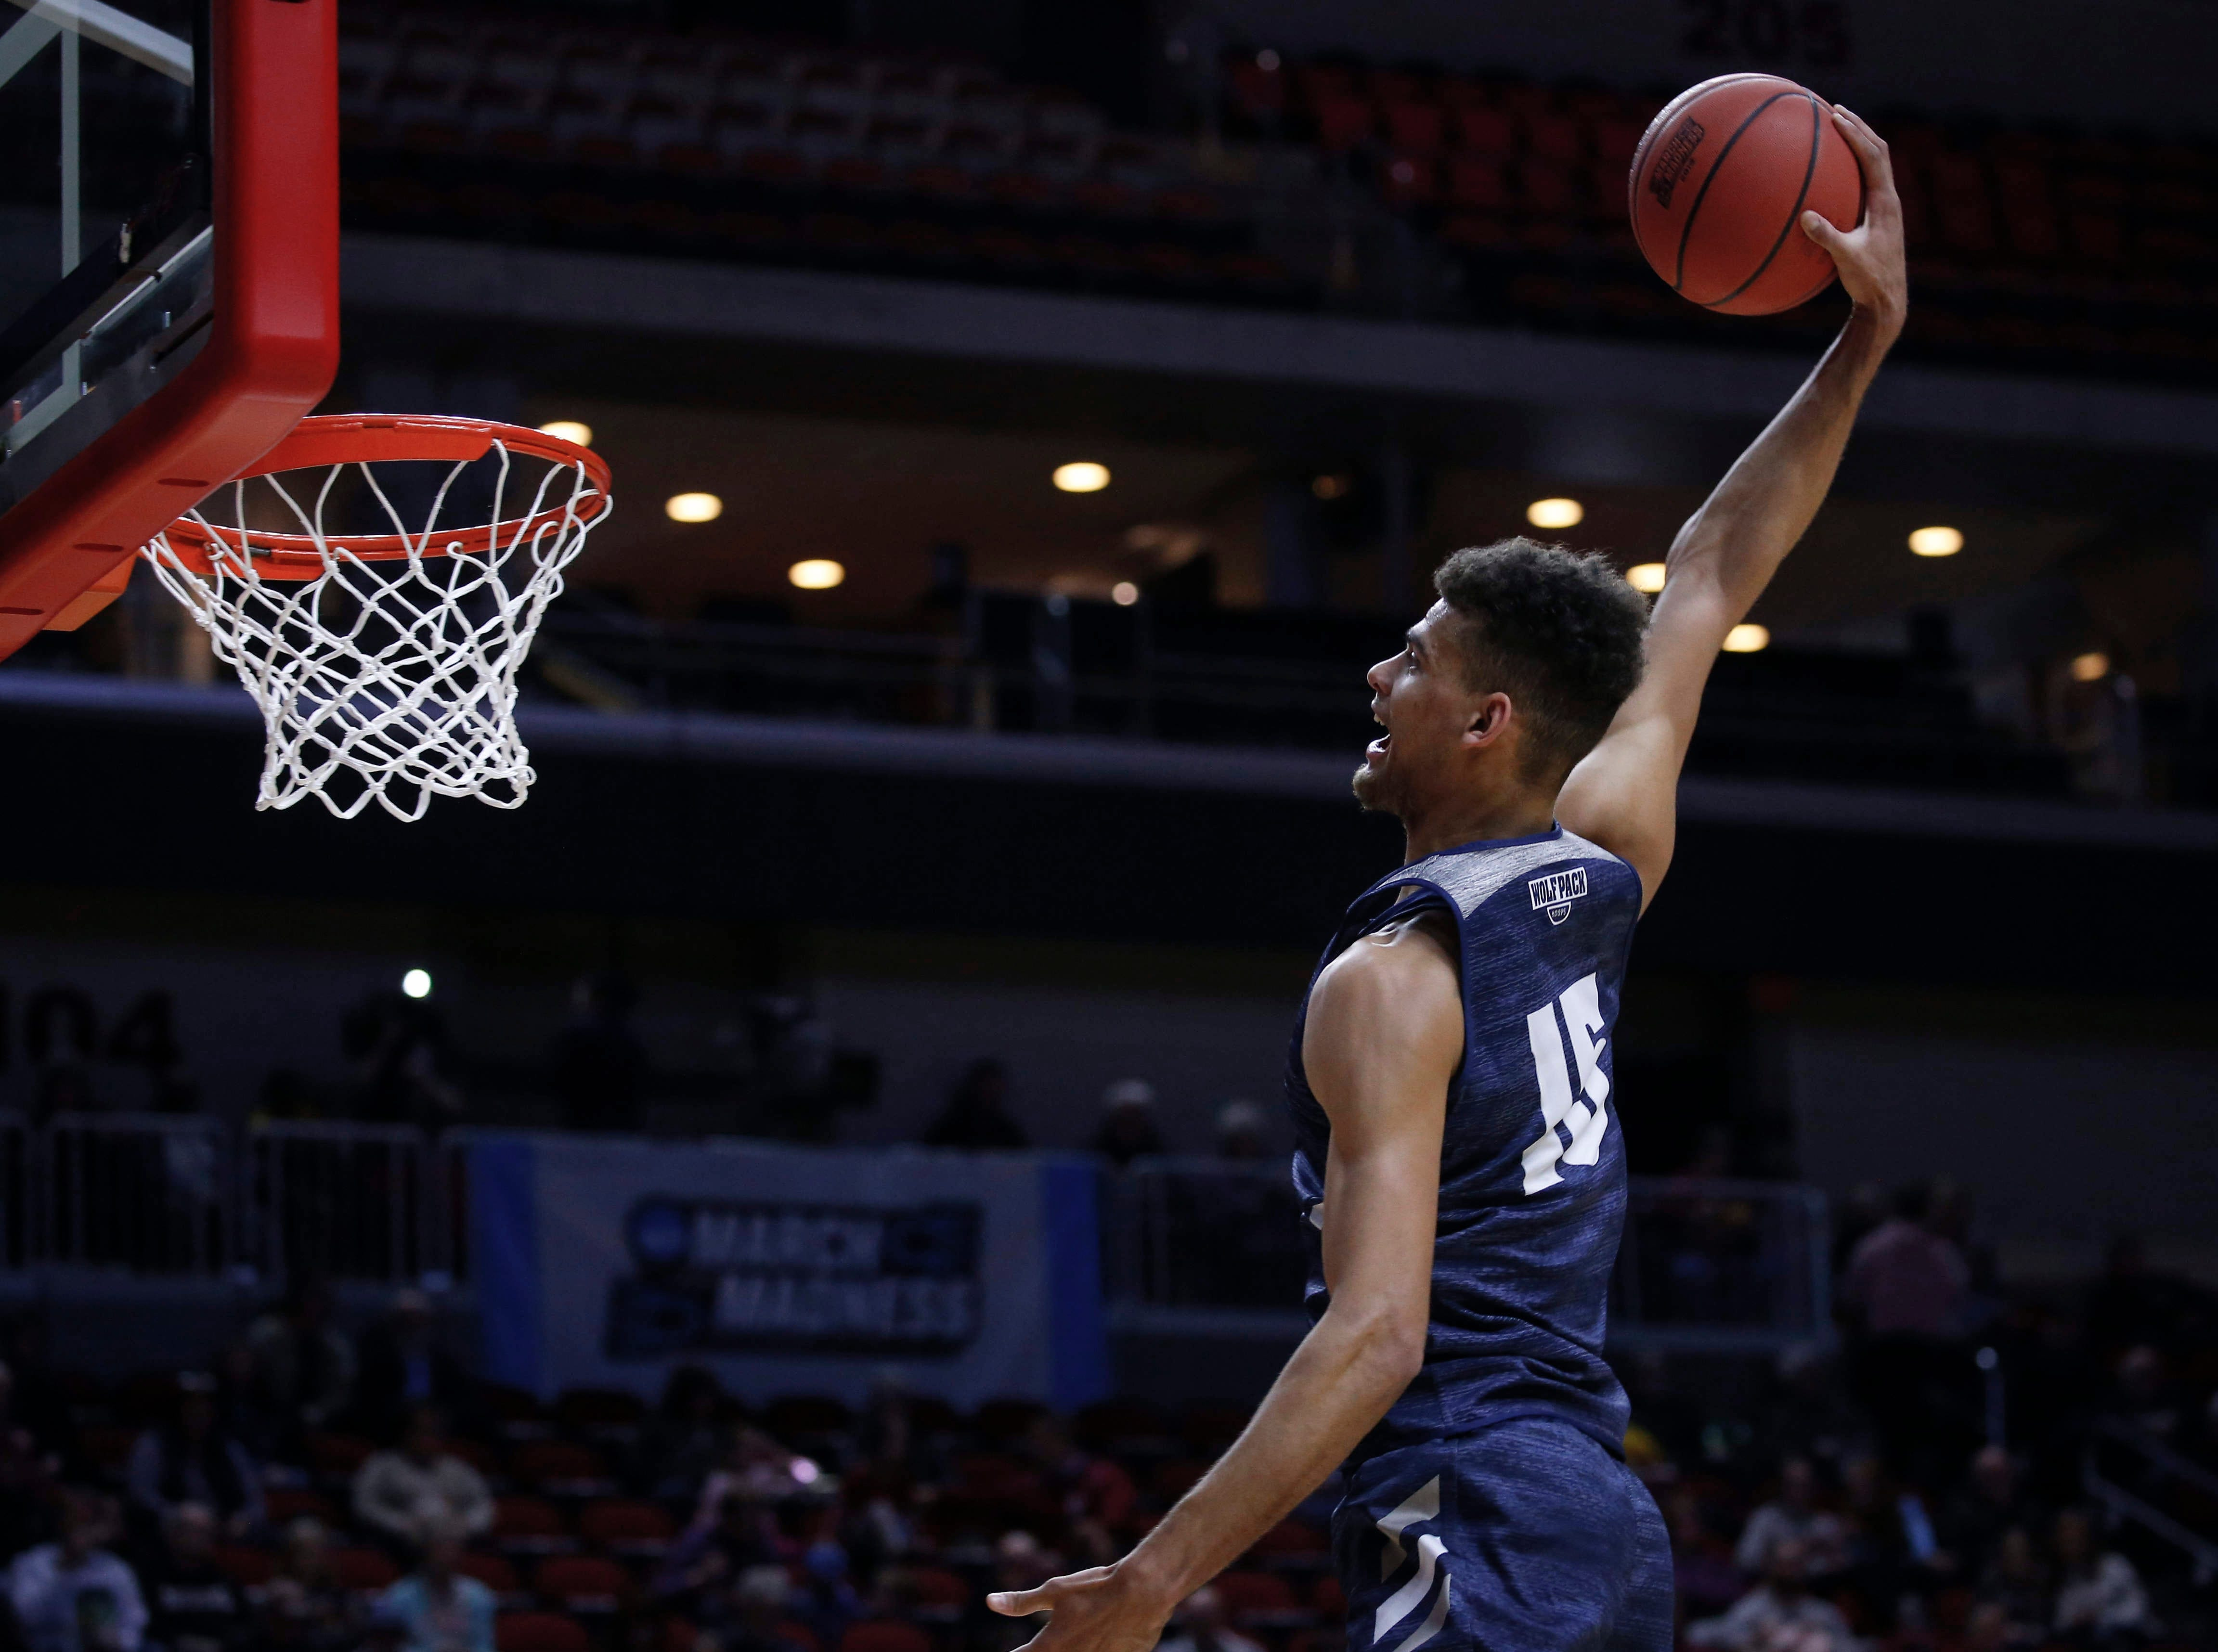 Nevada freshman Trey Porter soars to the hoop to dunk the ball during open practice on Wednesday, March 20, 2019, at Wells Fargo Arena in Des Moines, Iowa.